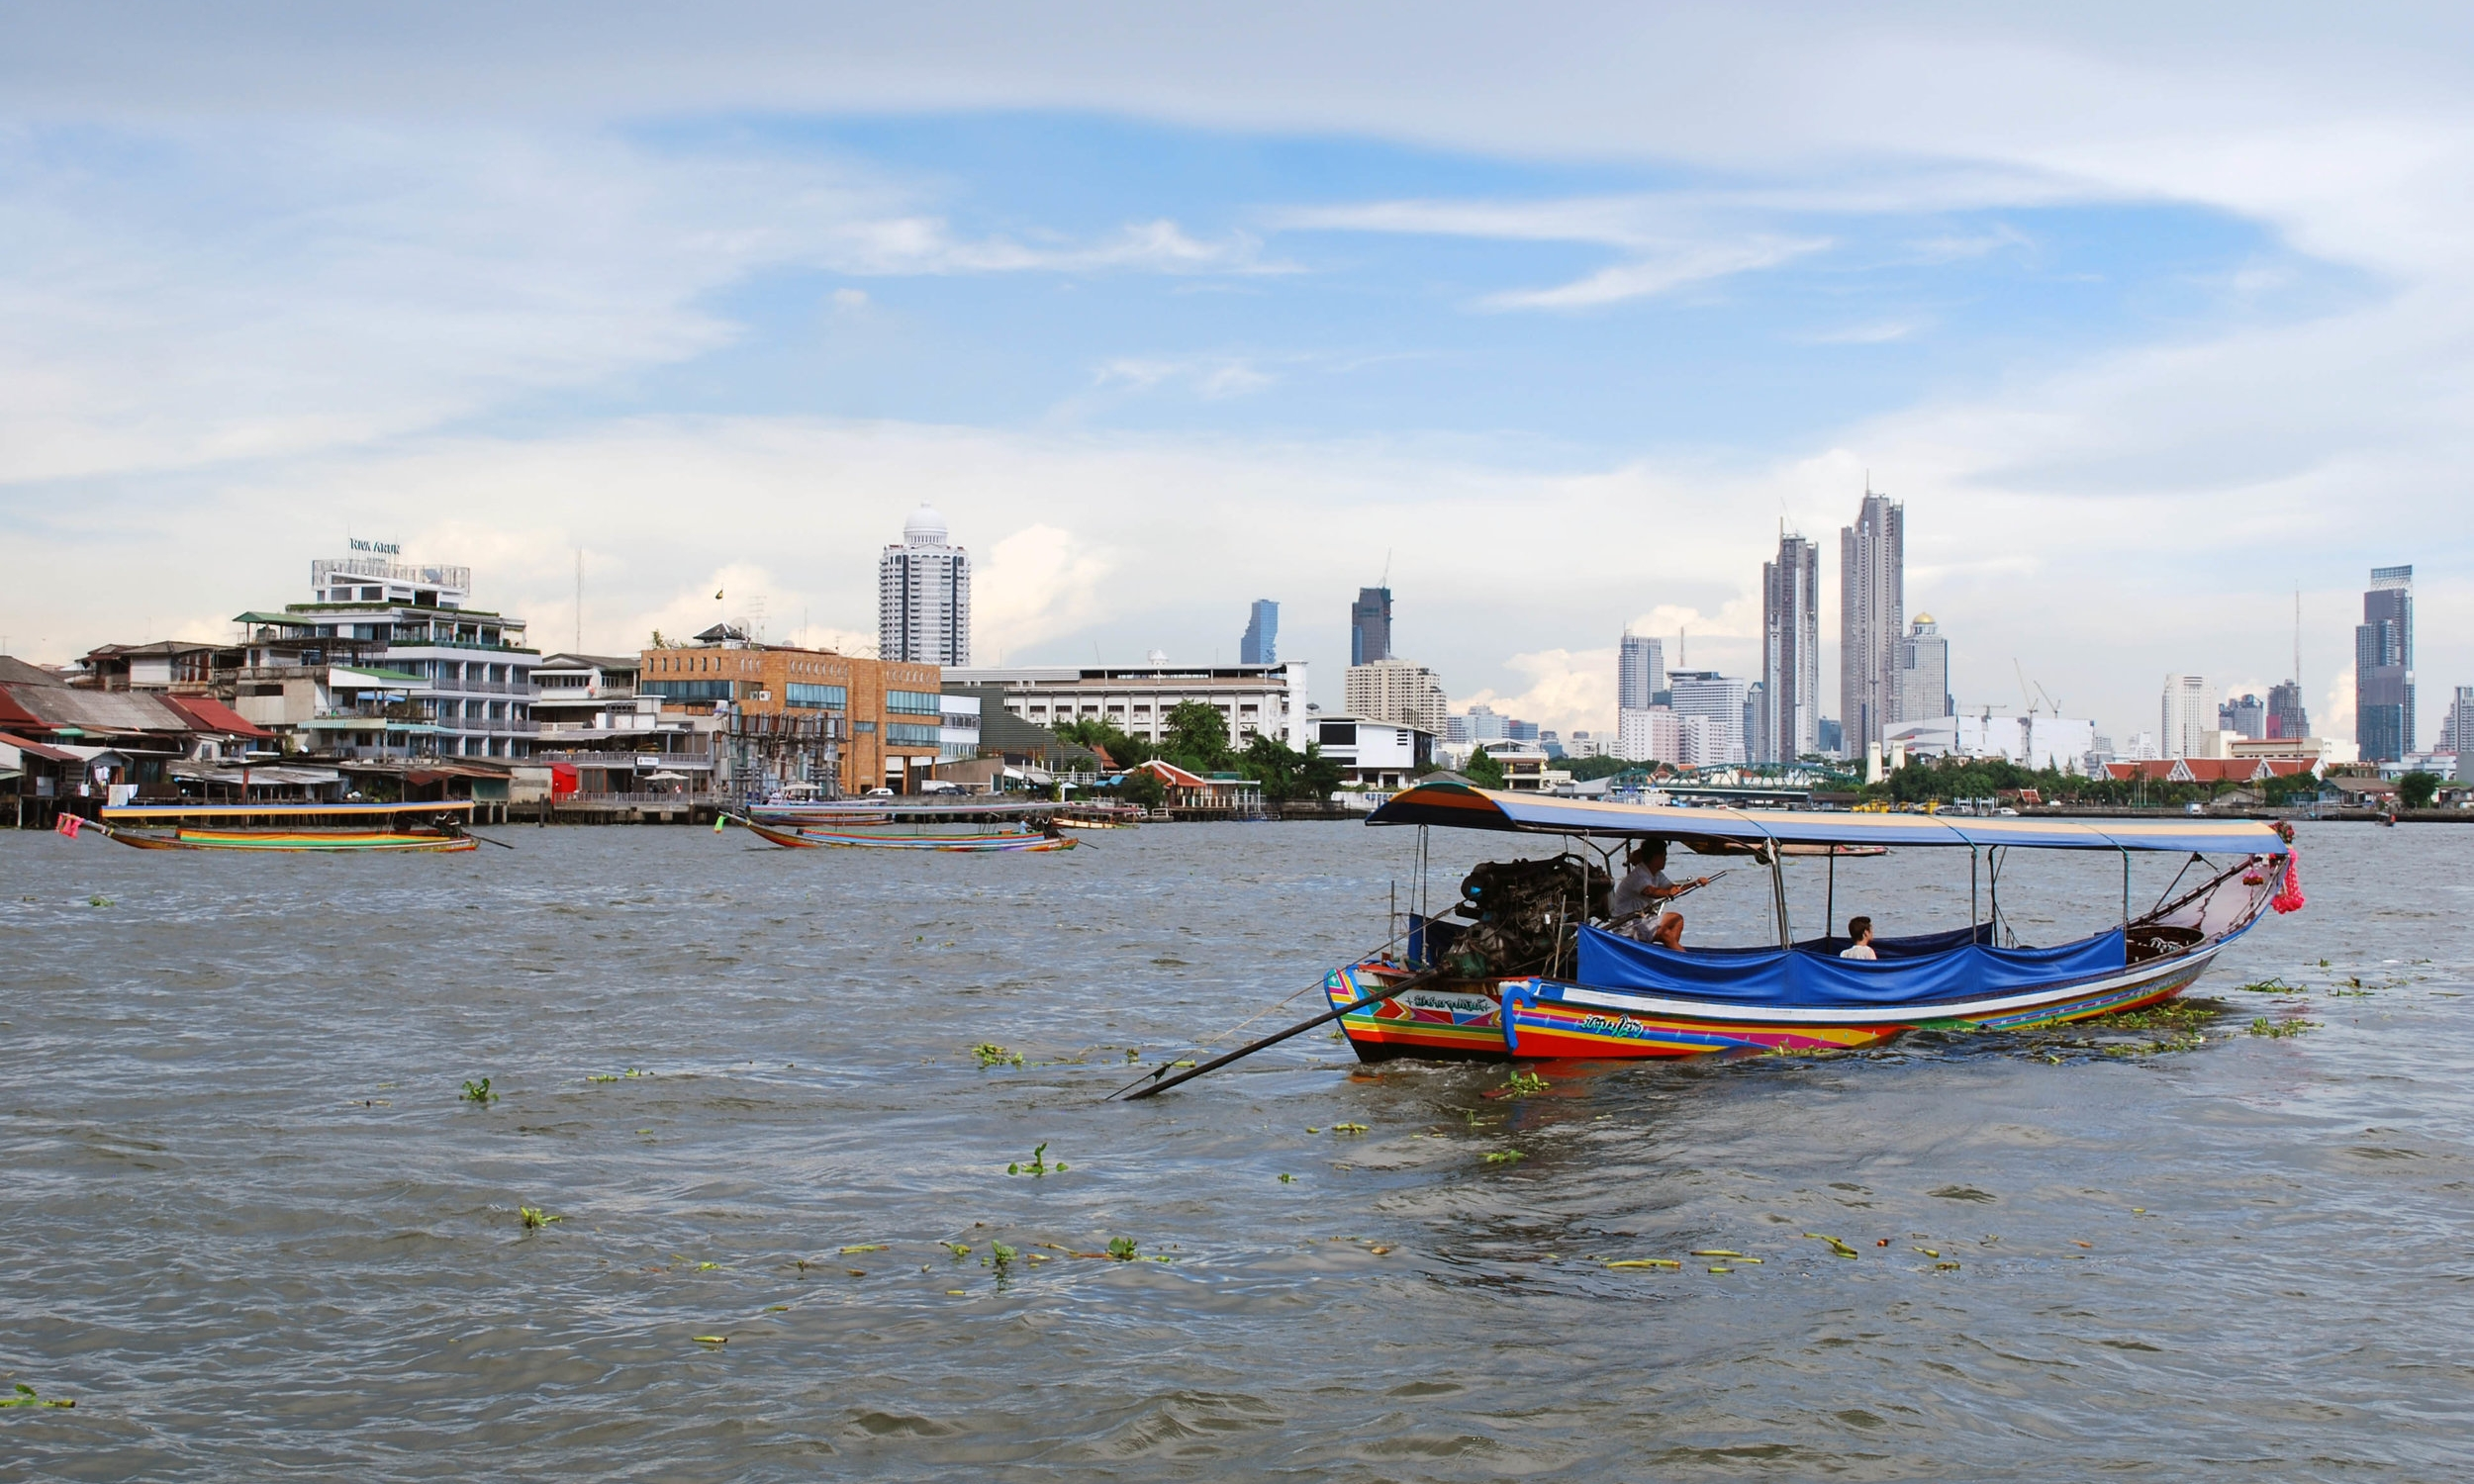 A tour on the Chao Phraya river